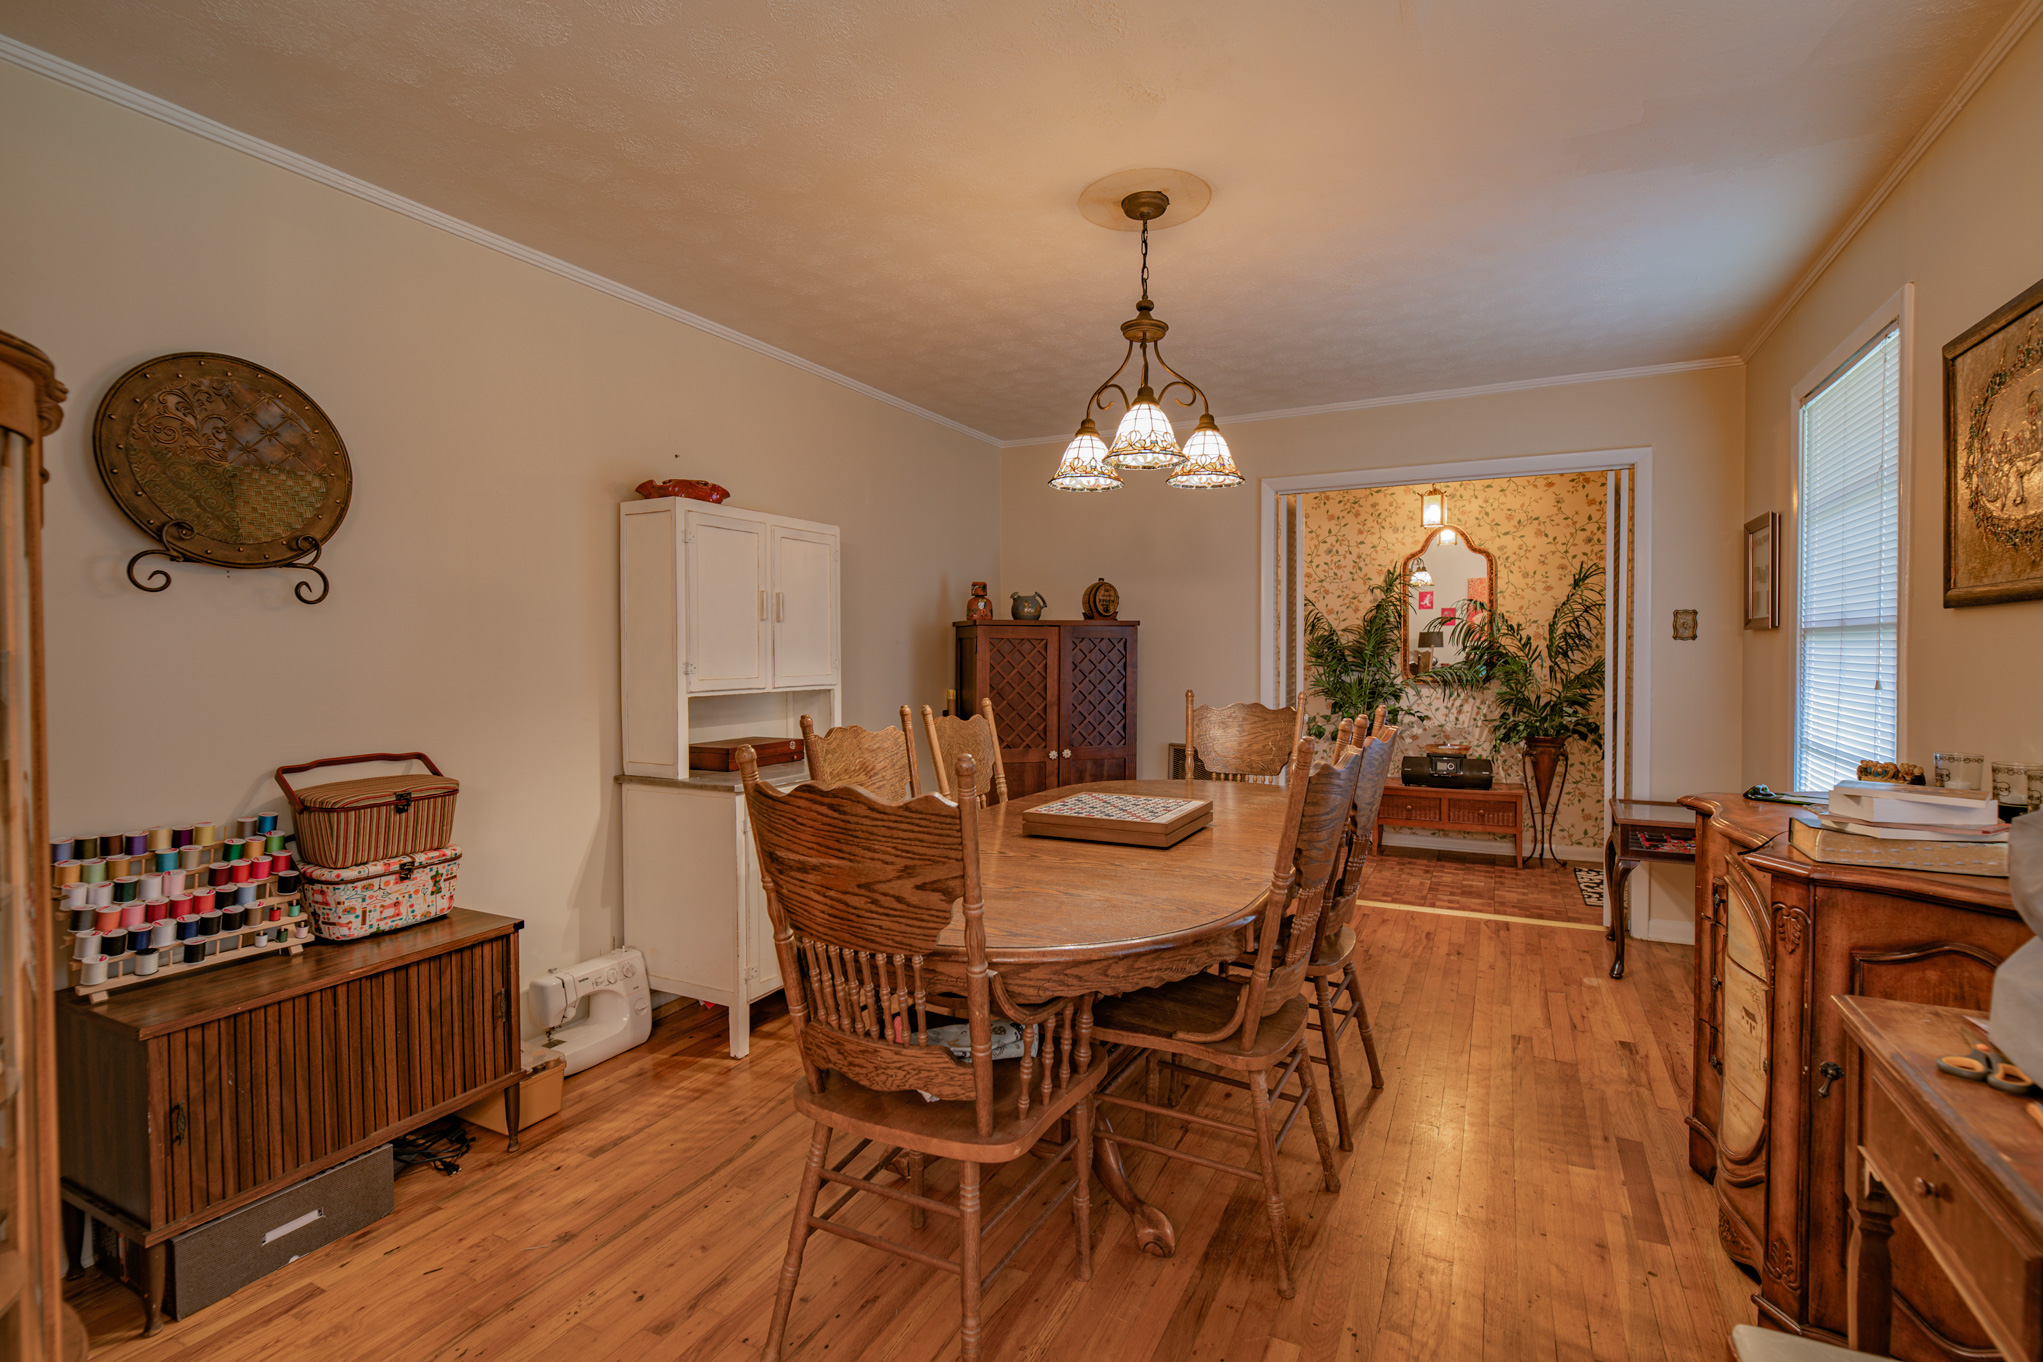 3-rivers-realty,3rr,911-morningside-drive,bainbridge-real-estate,bainbridggarealestate,mills-brock,three-rivers-realty,dining-room-foyer.jpg